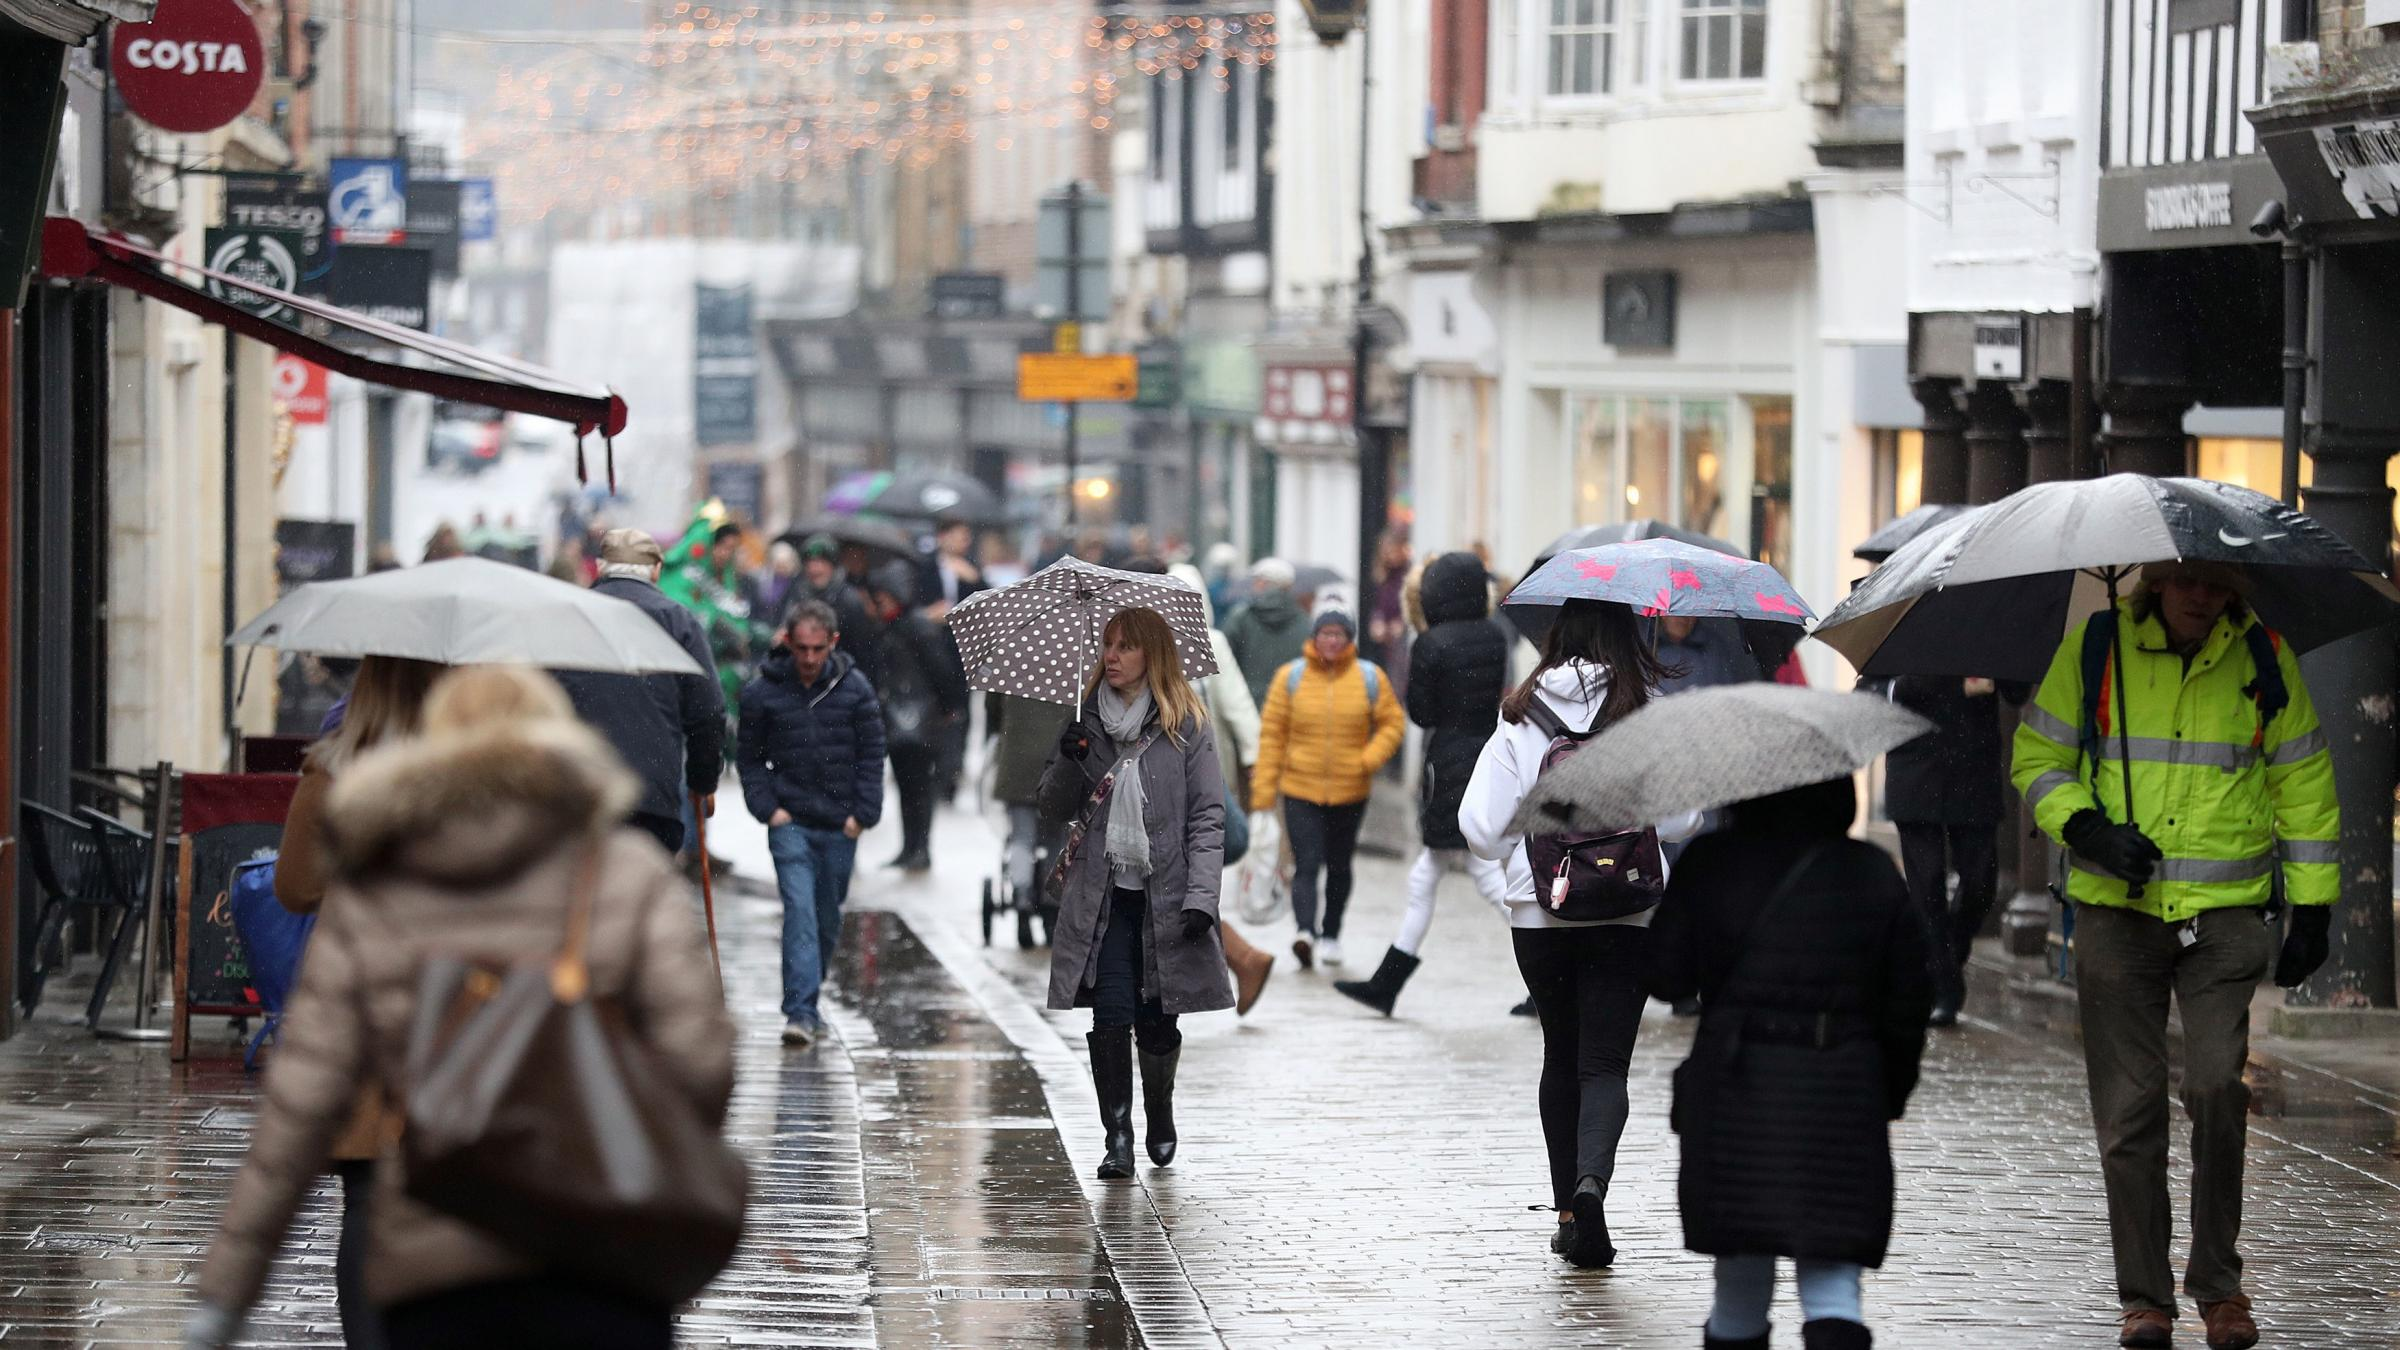 Shoppers stay away from high street in peak trading weekend before Christmas